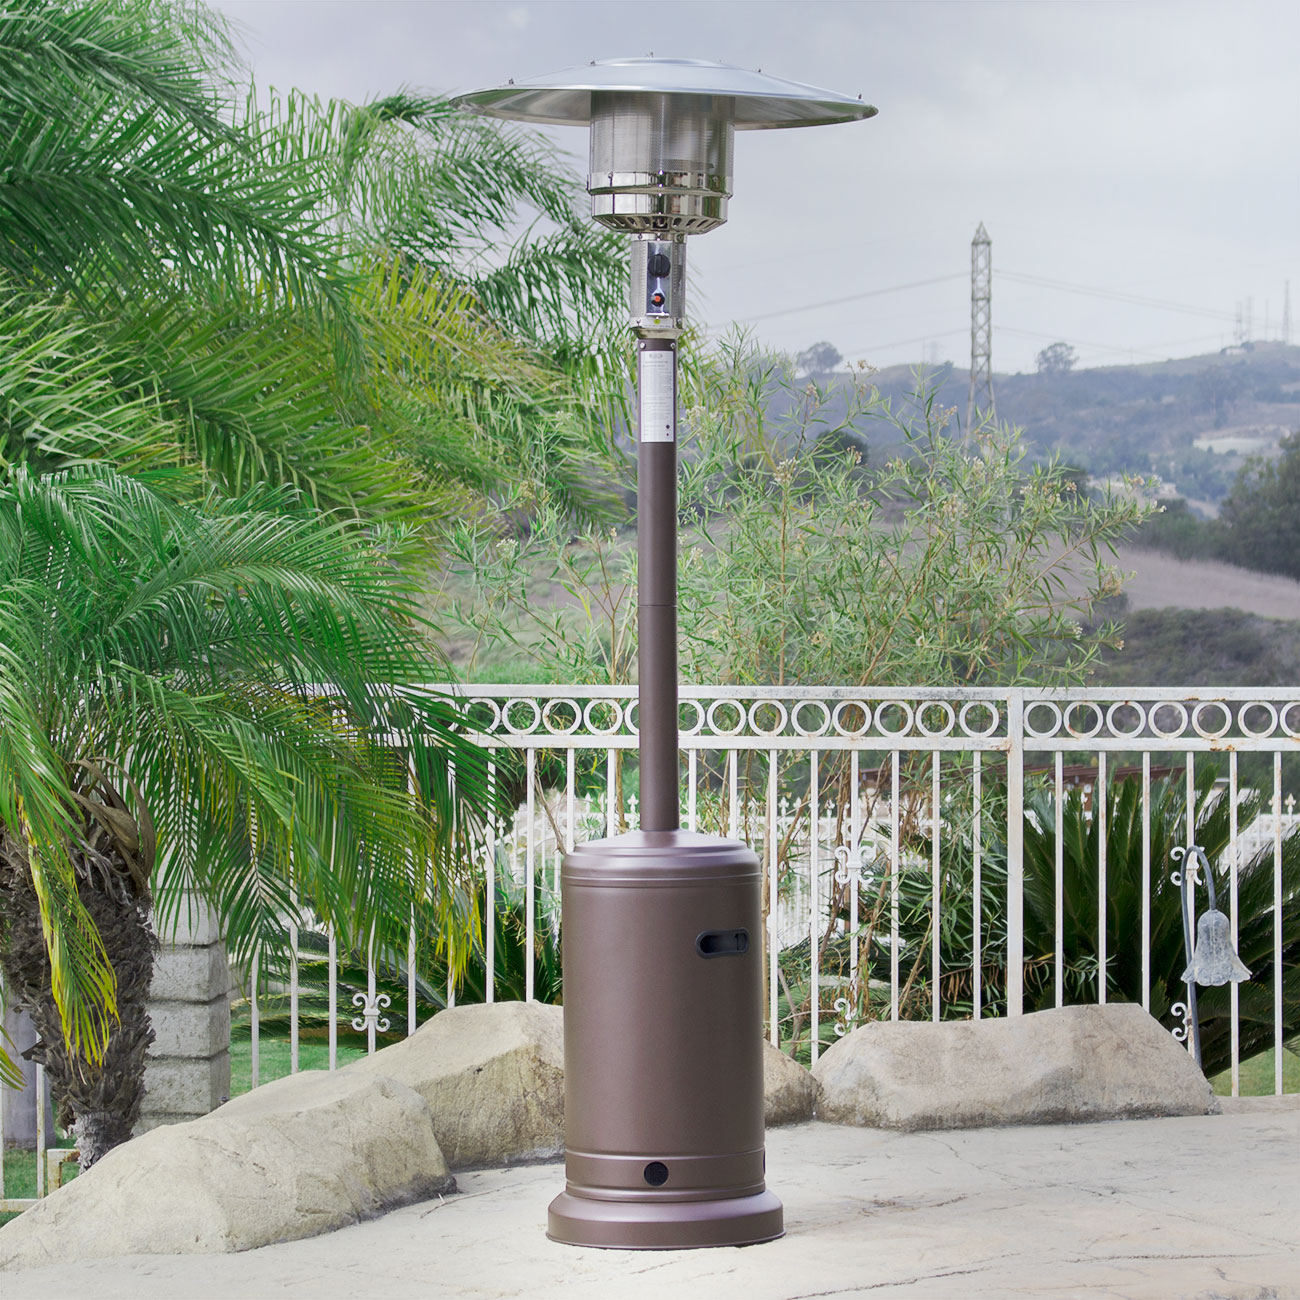 steel patio stainless lp heaters outdoor design heater images commercial fabulous backyard propane gas